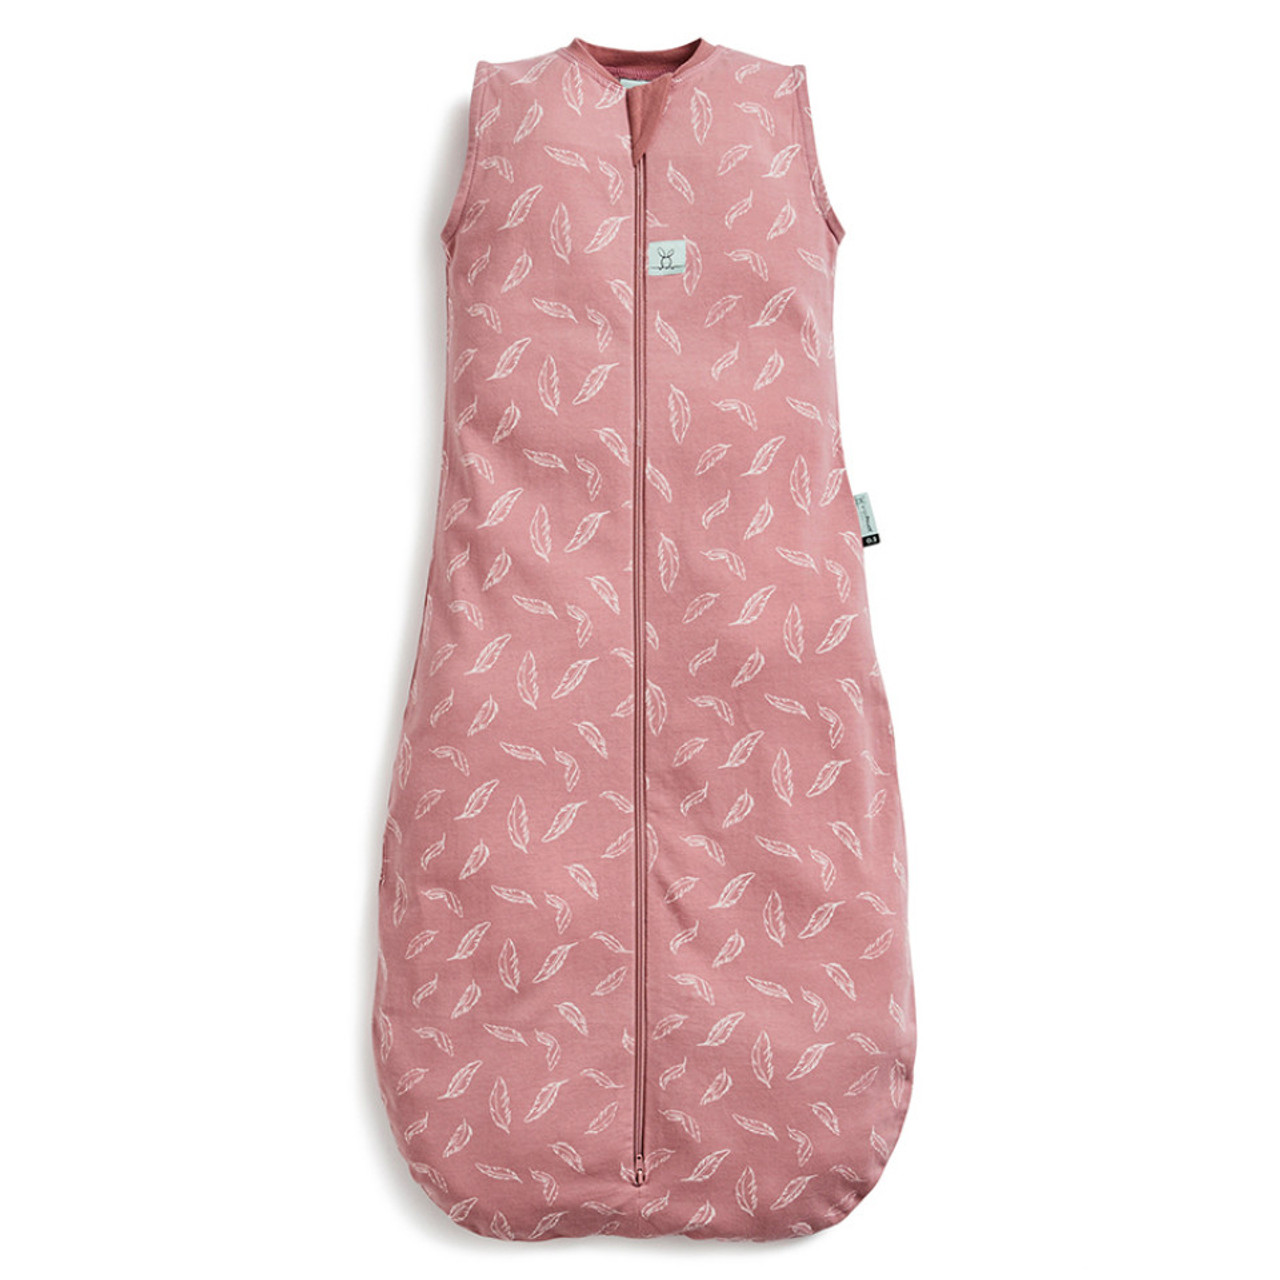 ergoPouch Jersey Sleeping Bag 1.0Tog 8-24 Months QUILL at Baby Barn Discounts